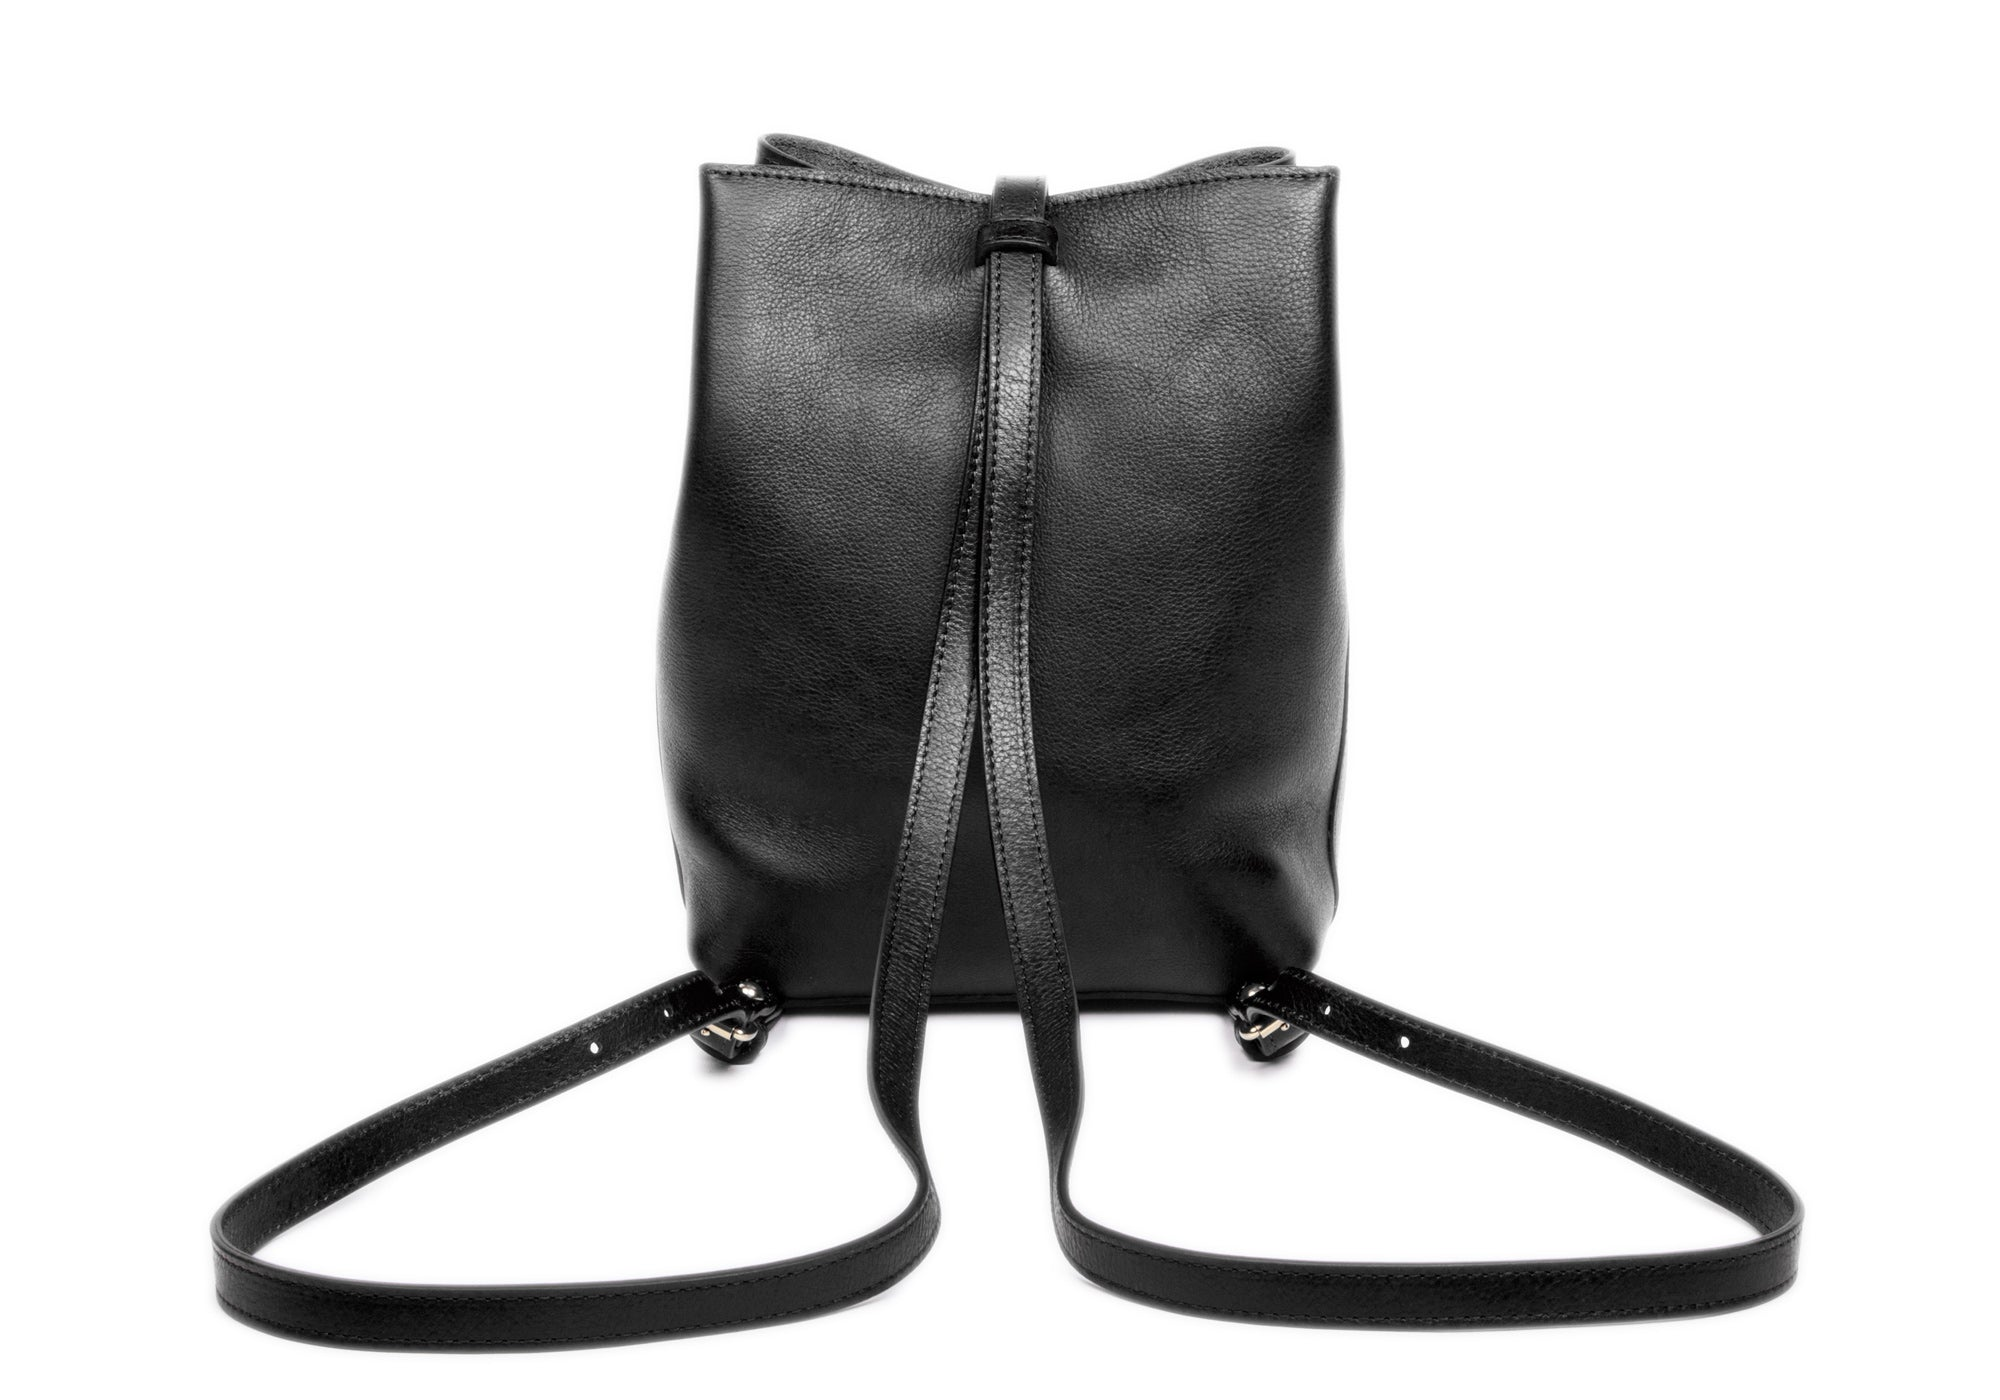 The Mini Sling Backpack Black